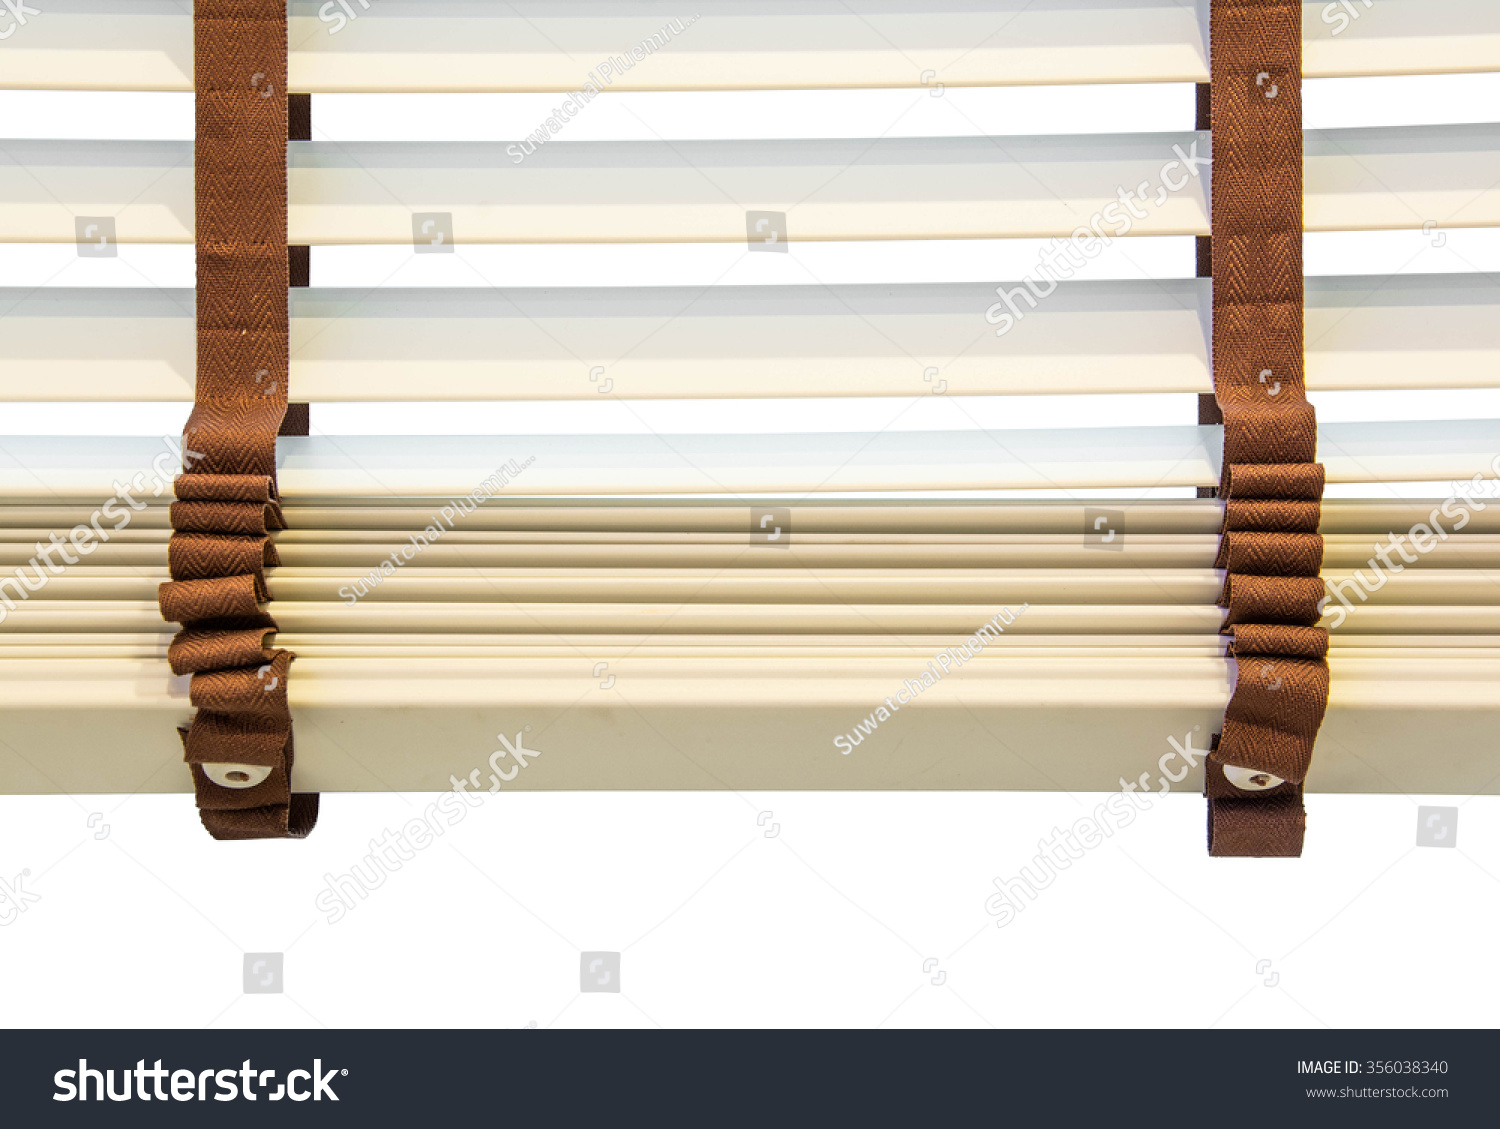 rolling bamboo blinds